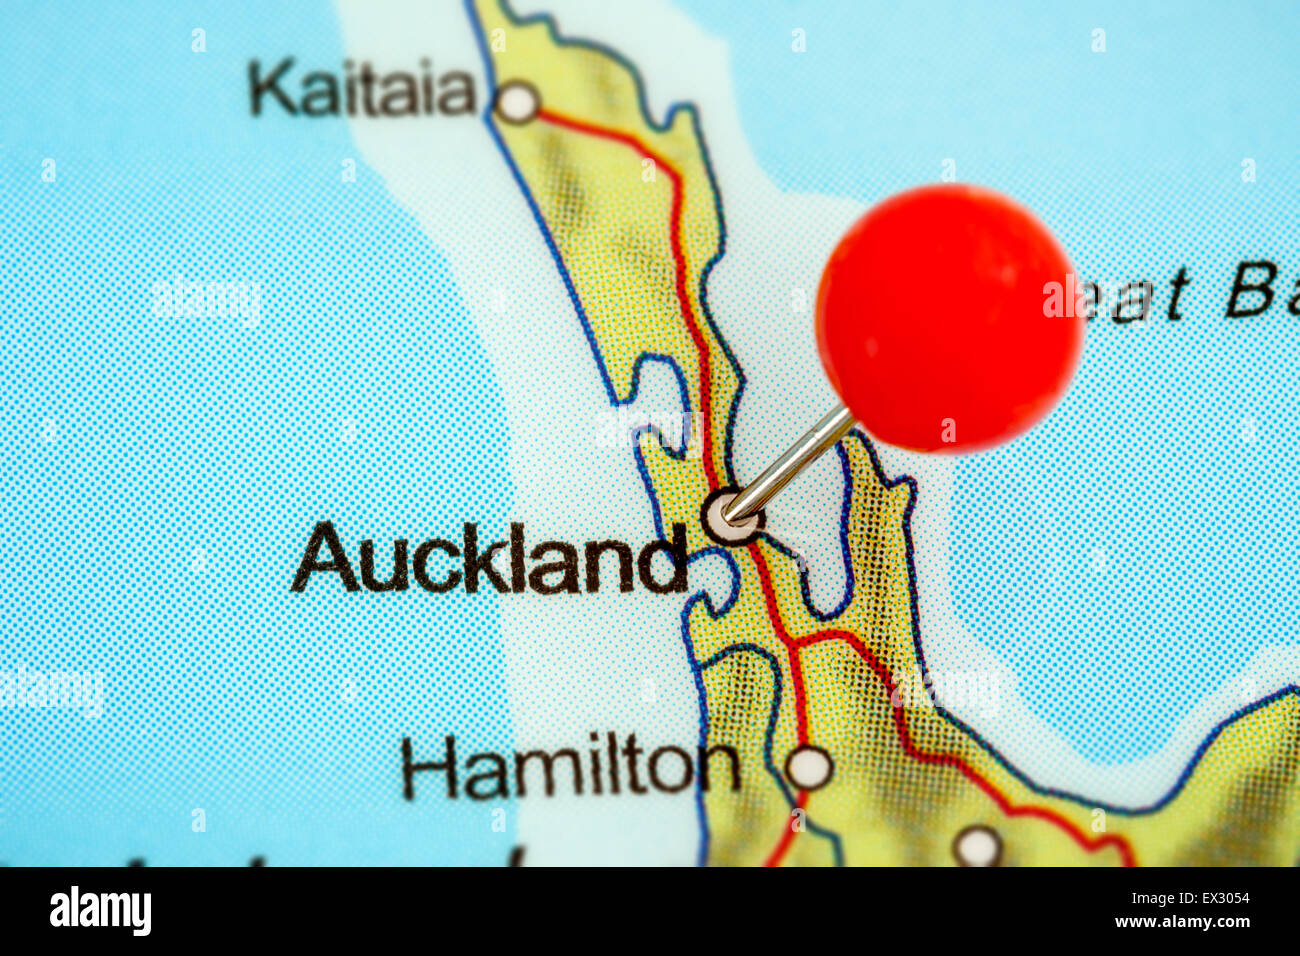 New Zealand Auckland Map.Close Up Of A Red Pushpin On A Map Of Auckland New Zealand Stock